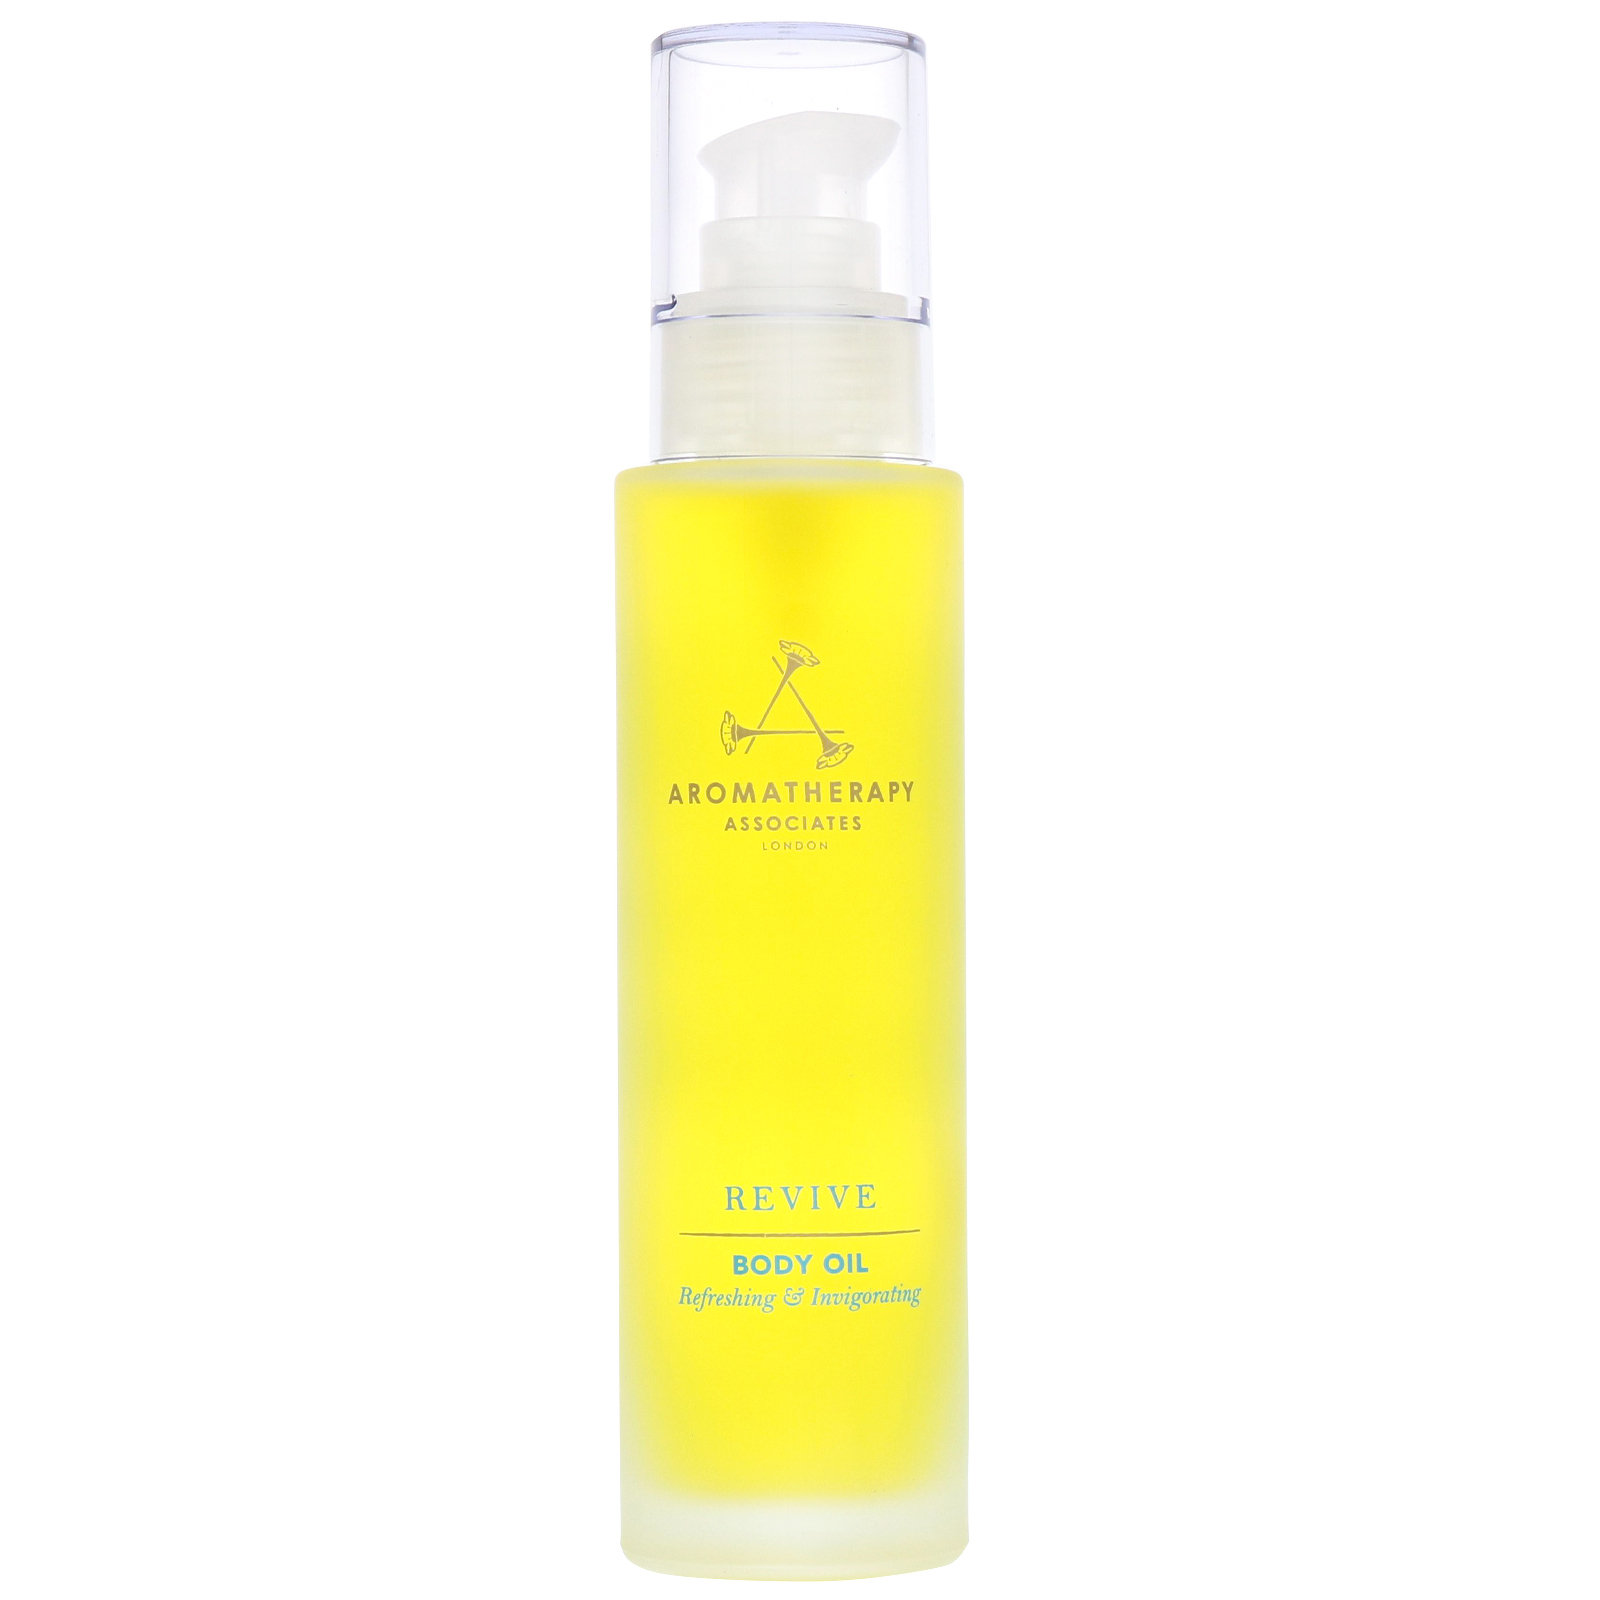 Aromatherapy Associates Revive Body Oil 100ml